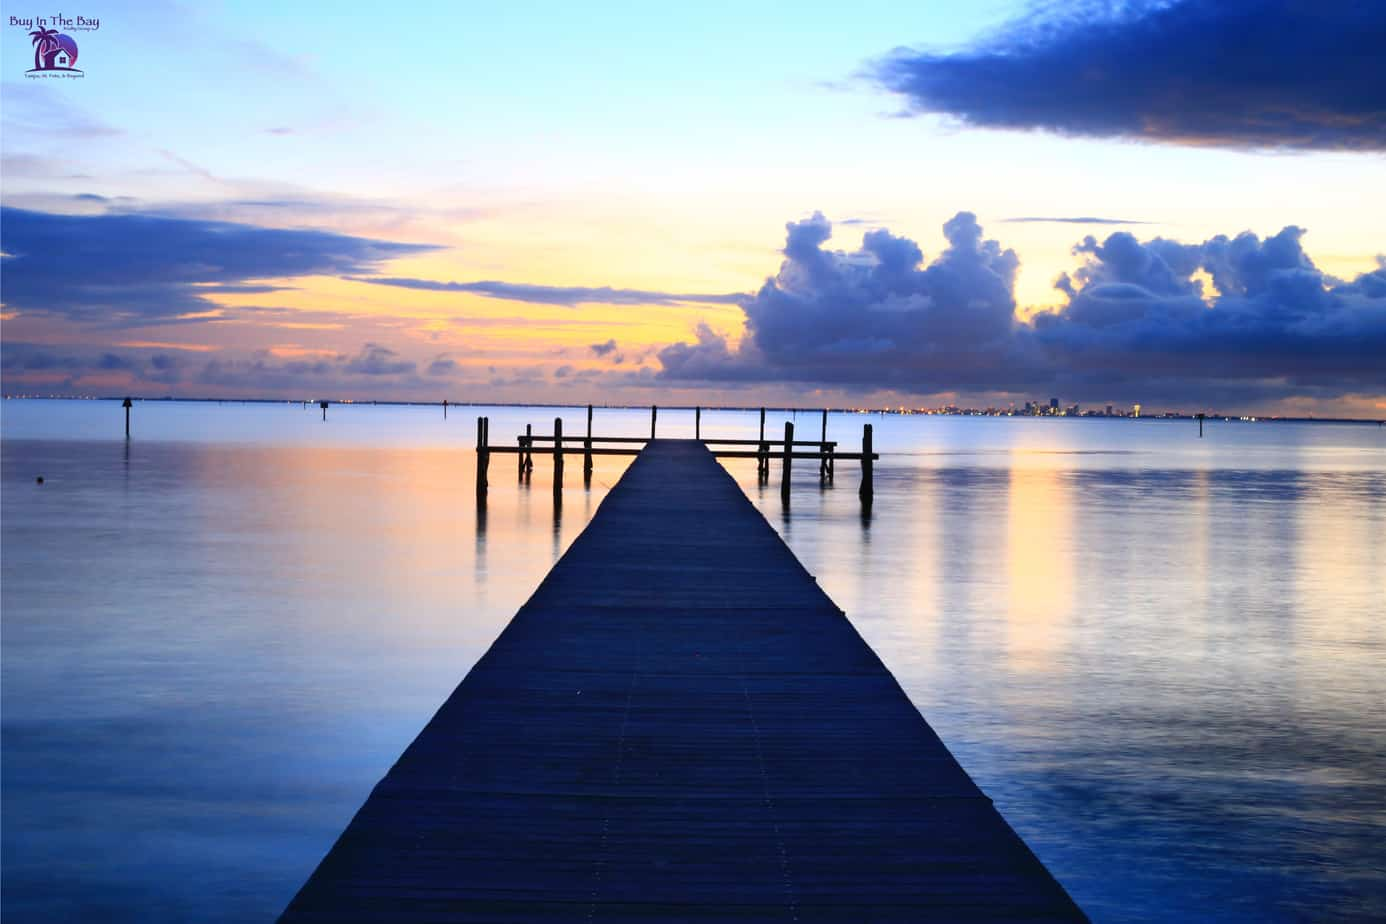 Sunset at Little Harbor in Ruskin FL with dock on water